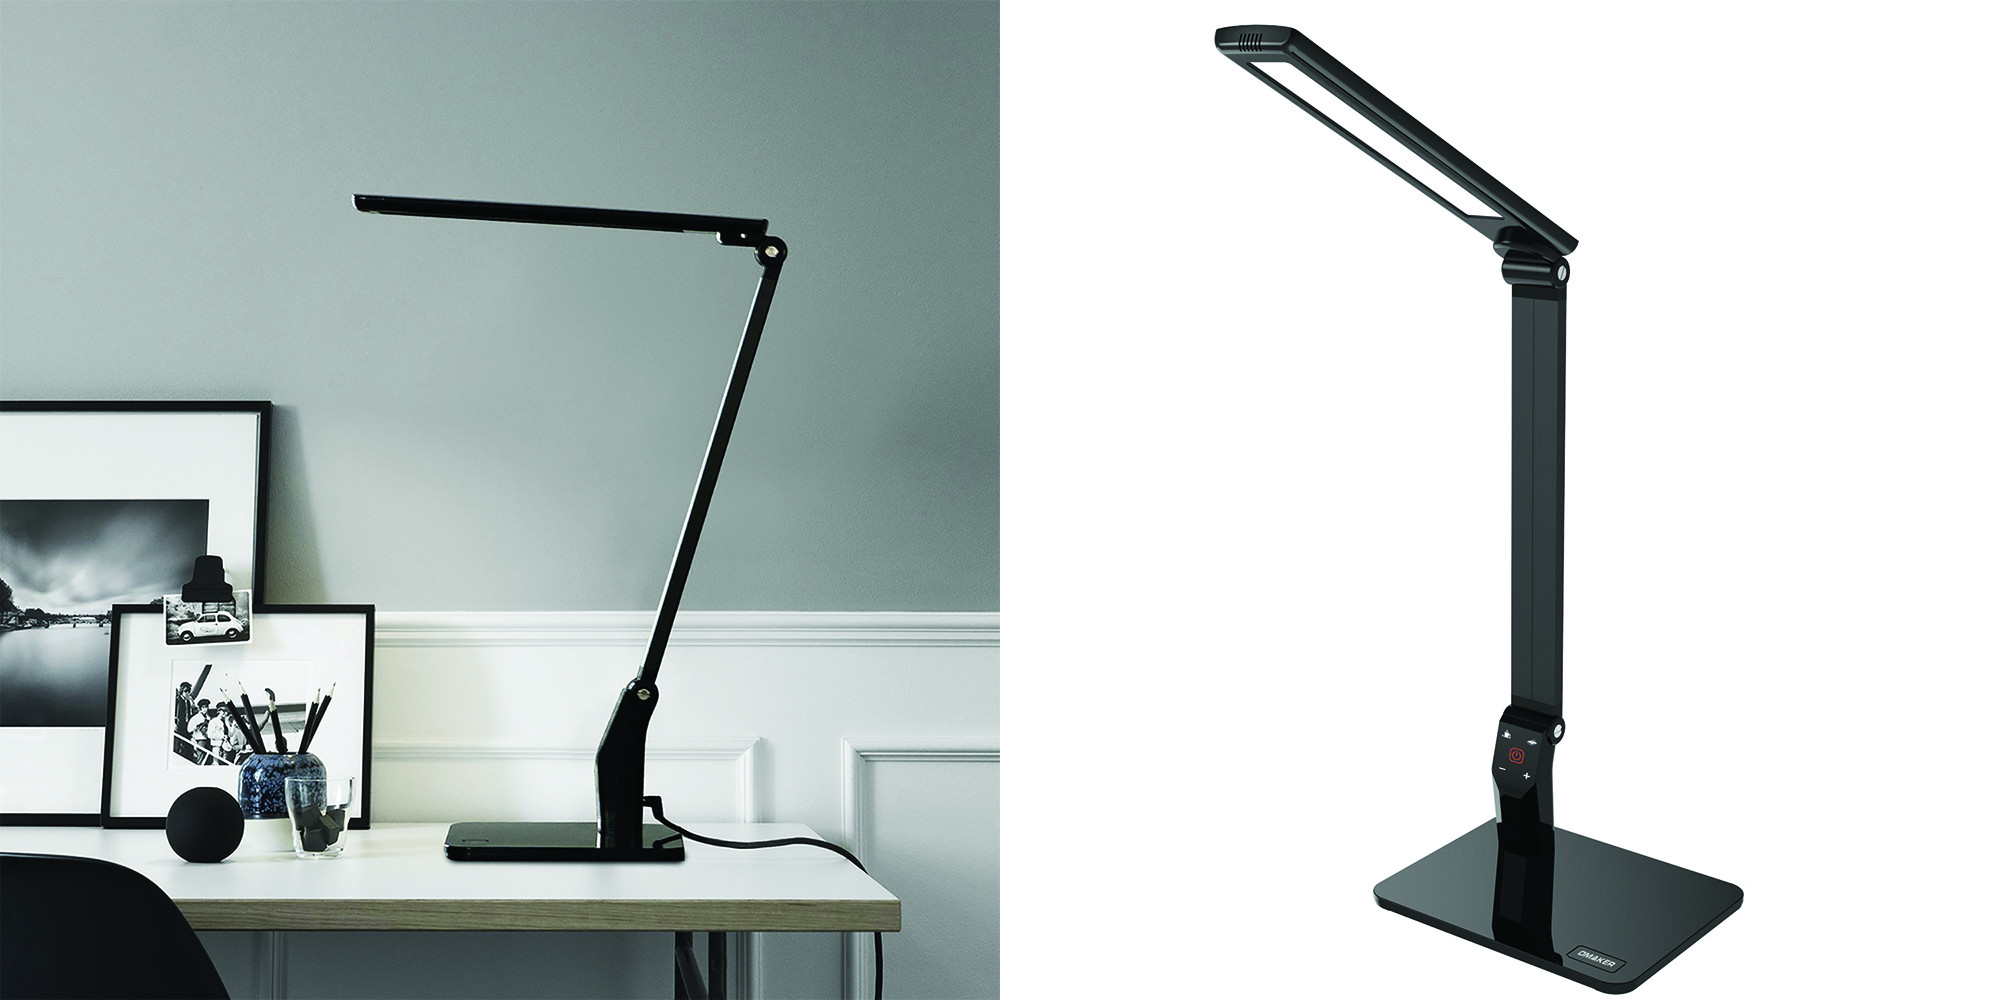 Best ideas about Desk Lamp With Usb Port . Save or Pin Kuno LED Desk Lamp With USB Port Lightscouk Lights and Lamps Now.